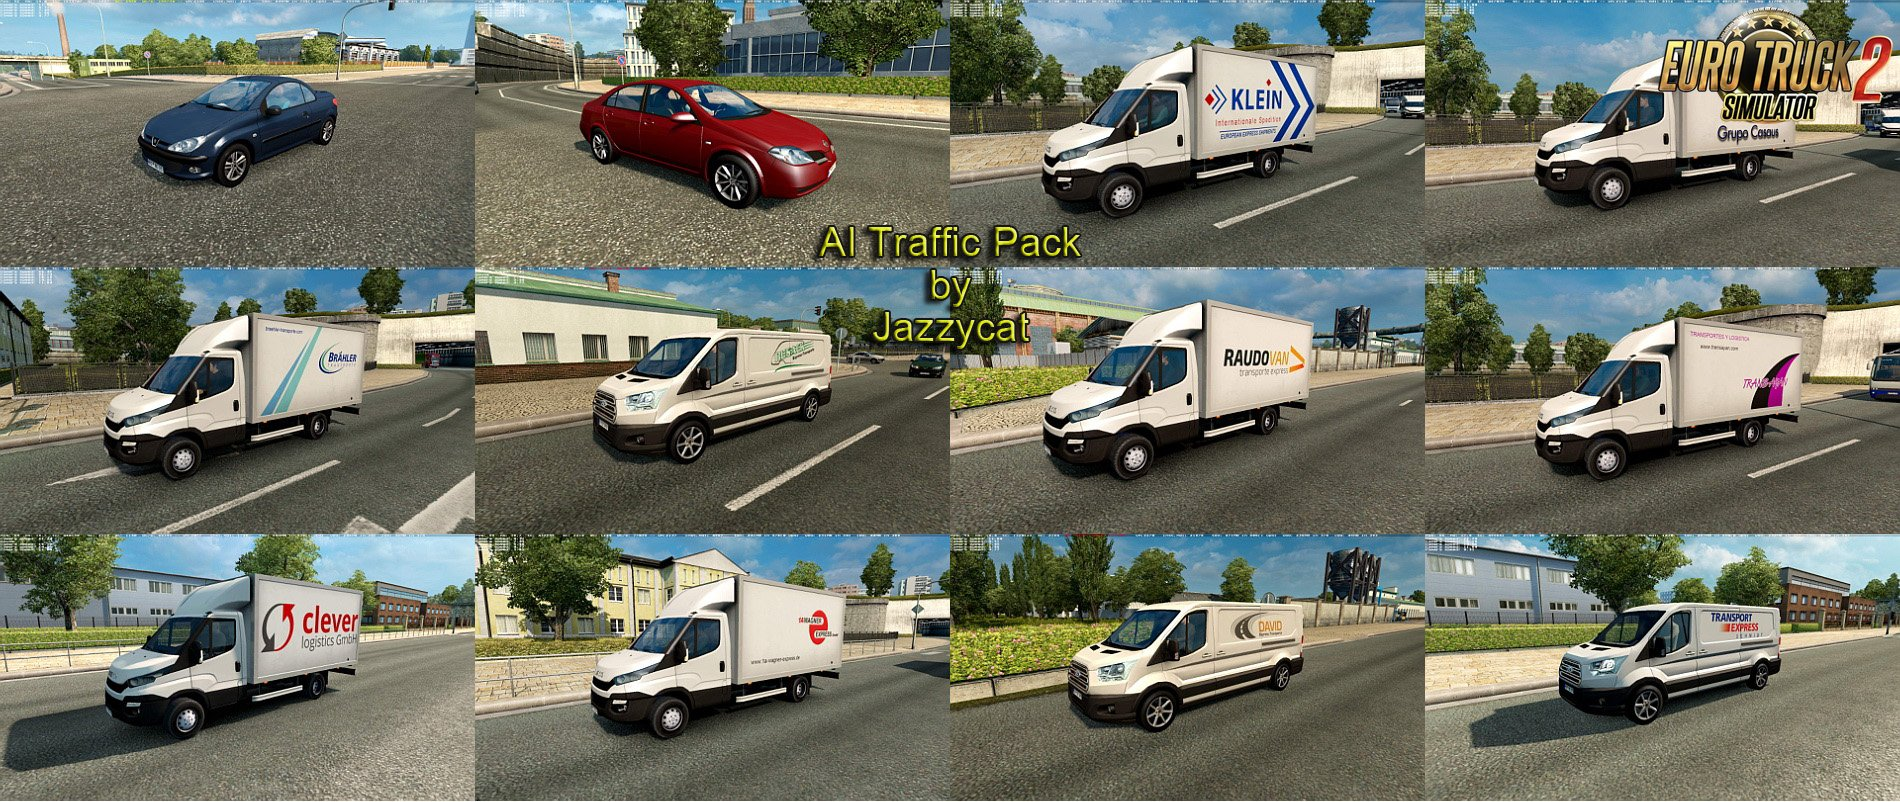 AI Traffic Pack v6.5 by Jazzycat